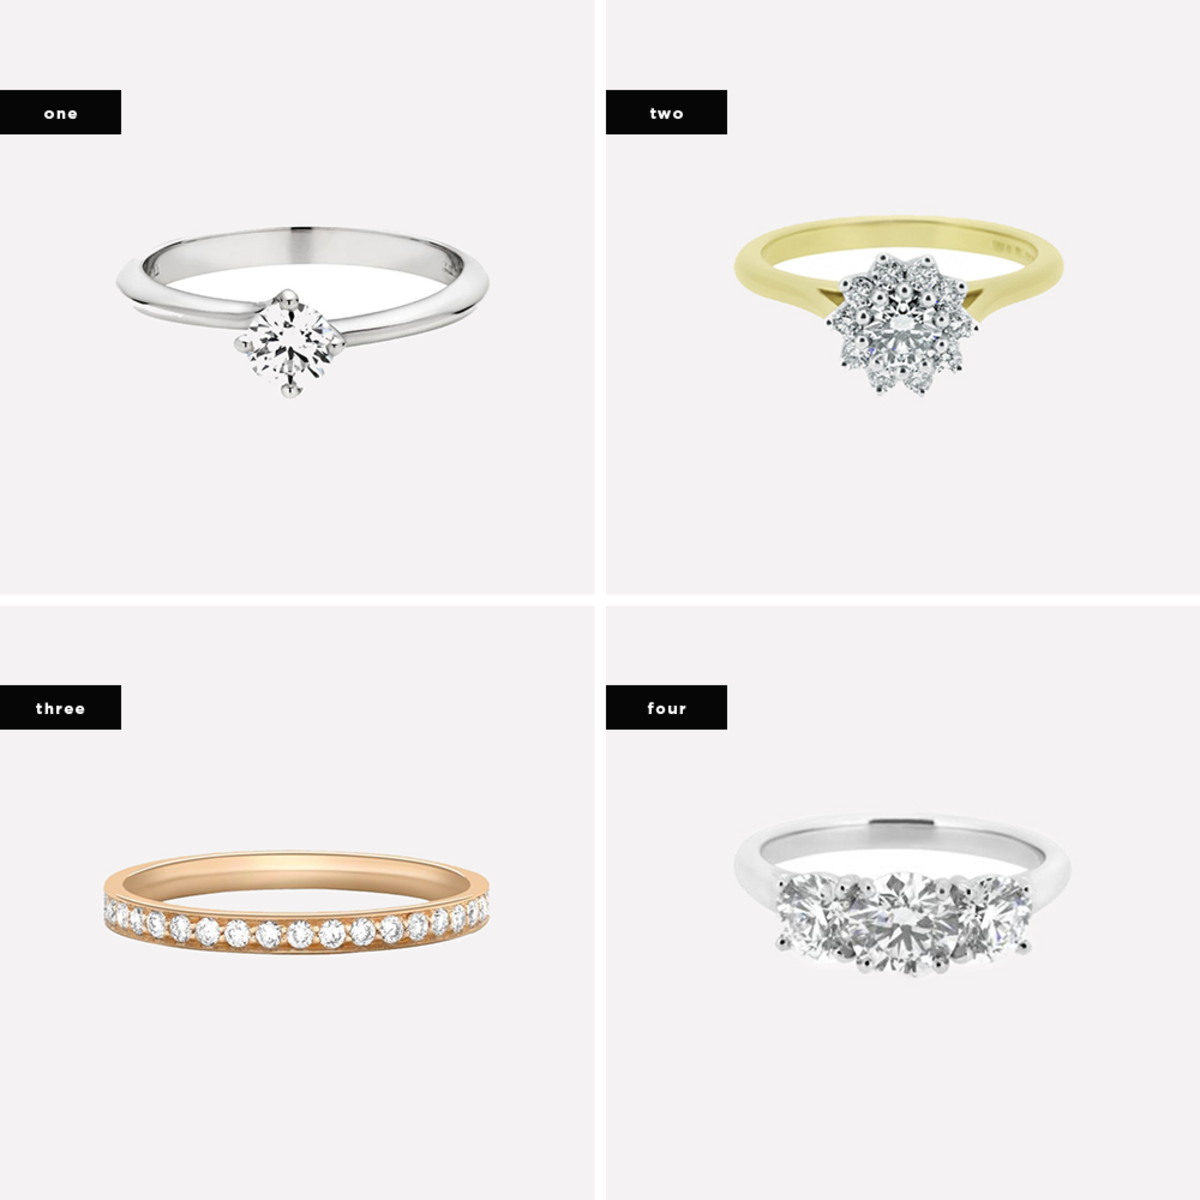 1. Arabesque / 2. Diamond Cluster Ring in Fairtrade Yellow Gold / 3. Grain Set Half Eternity Ring / 4. Platinum Diamond Trilogy Ring